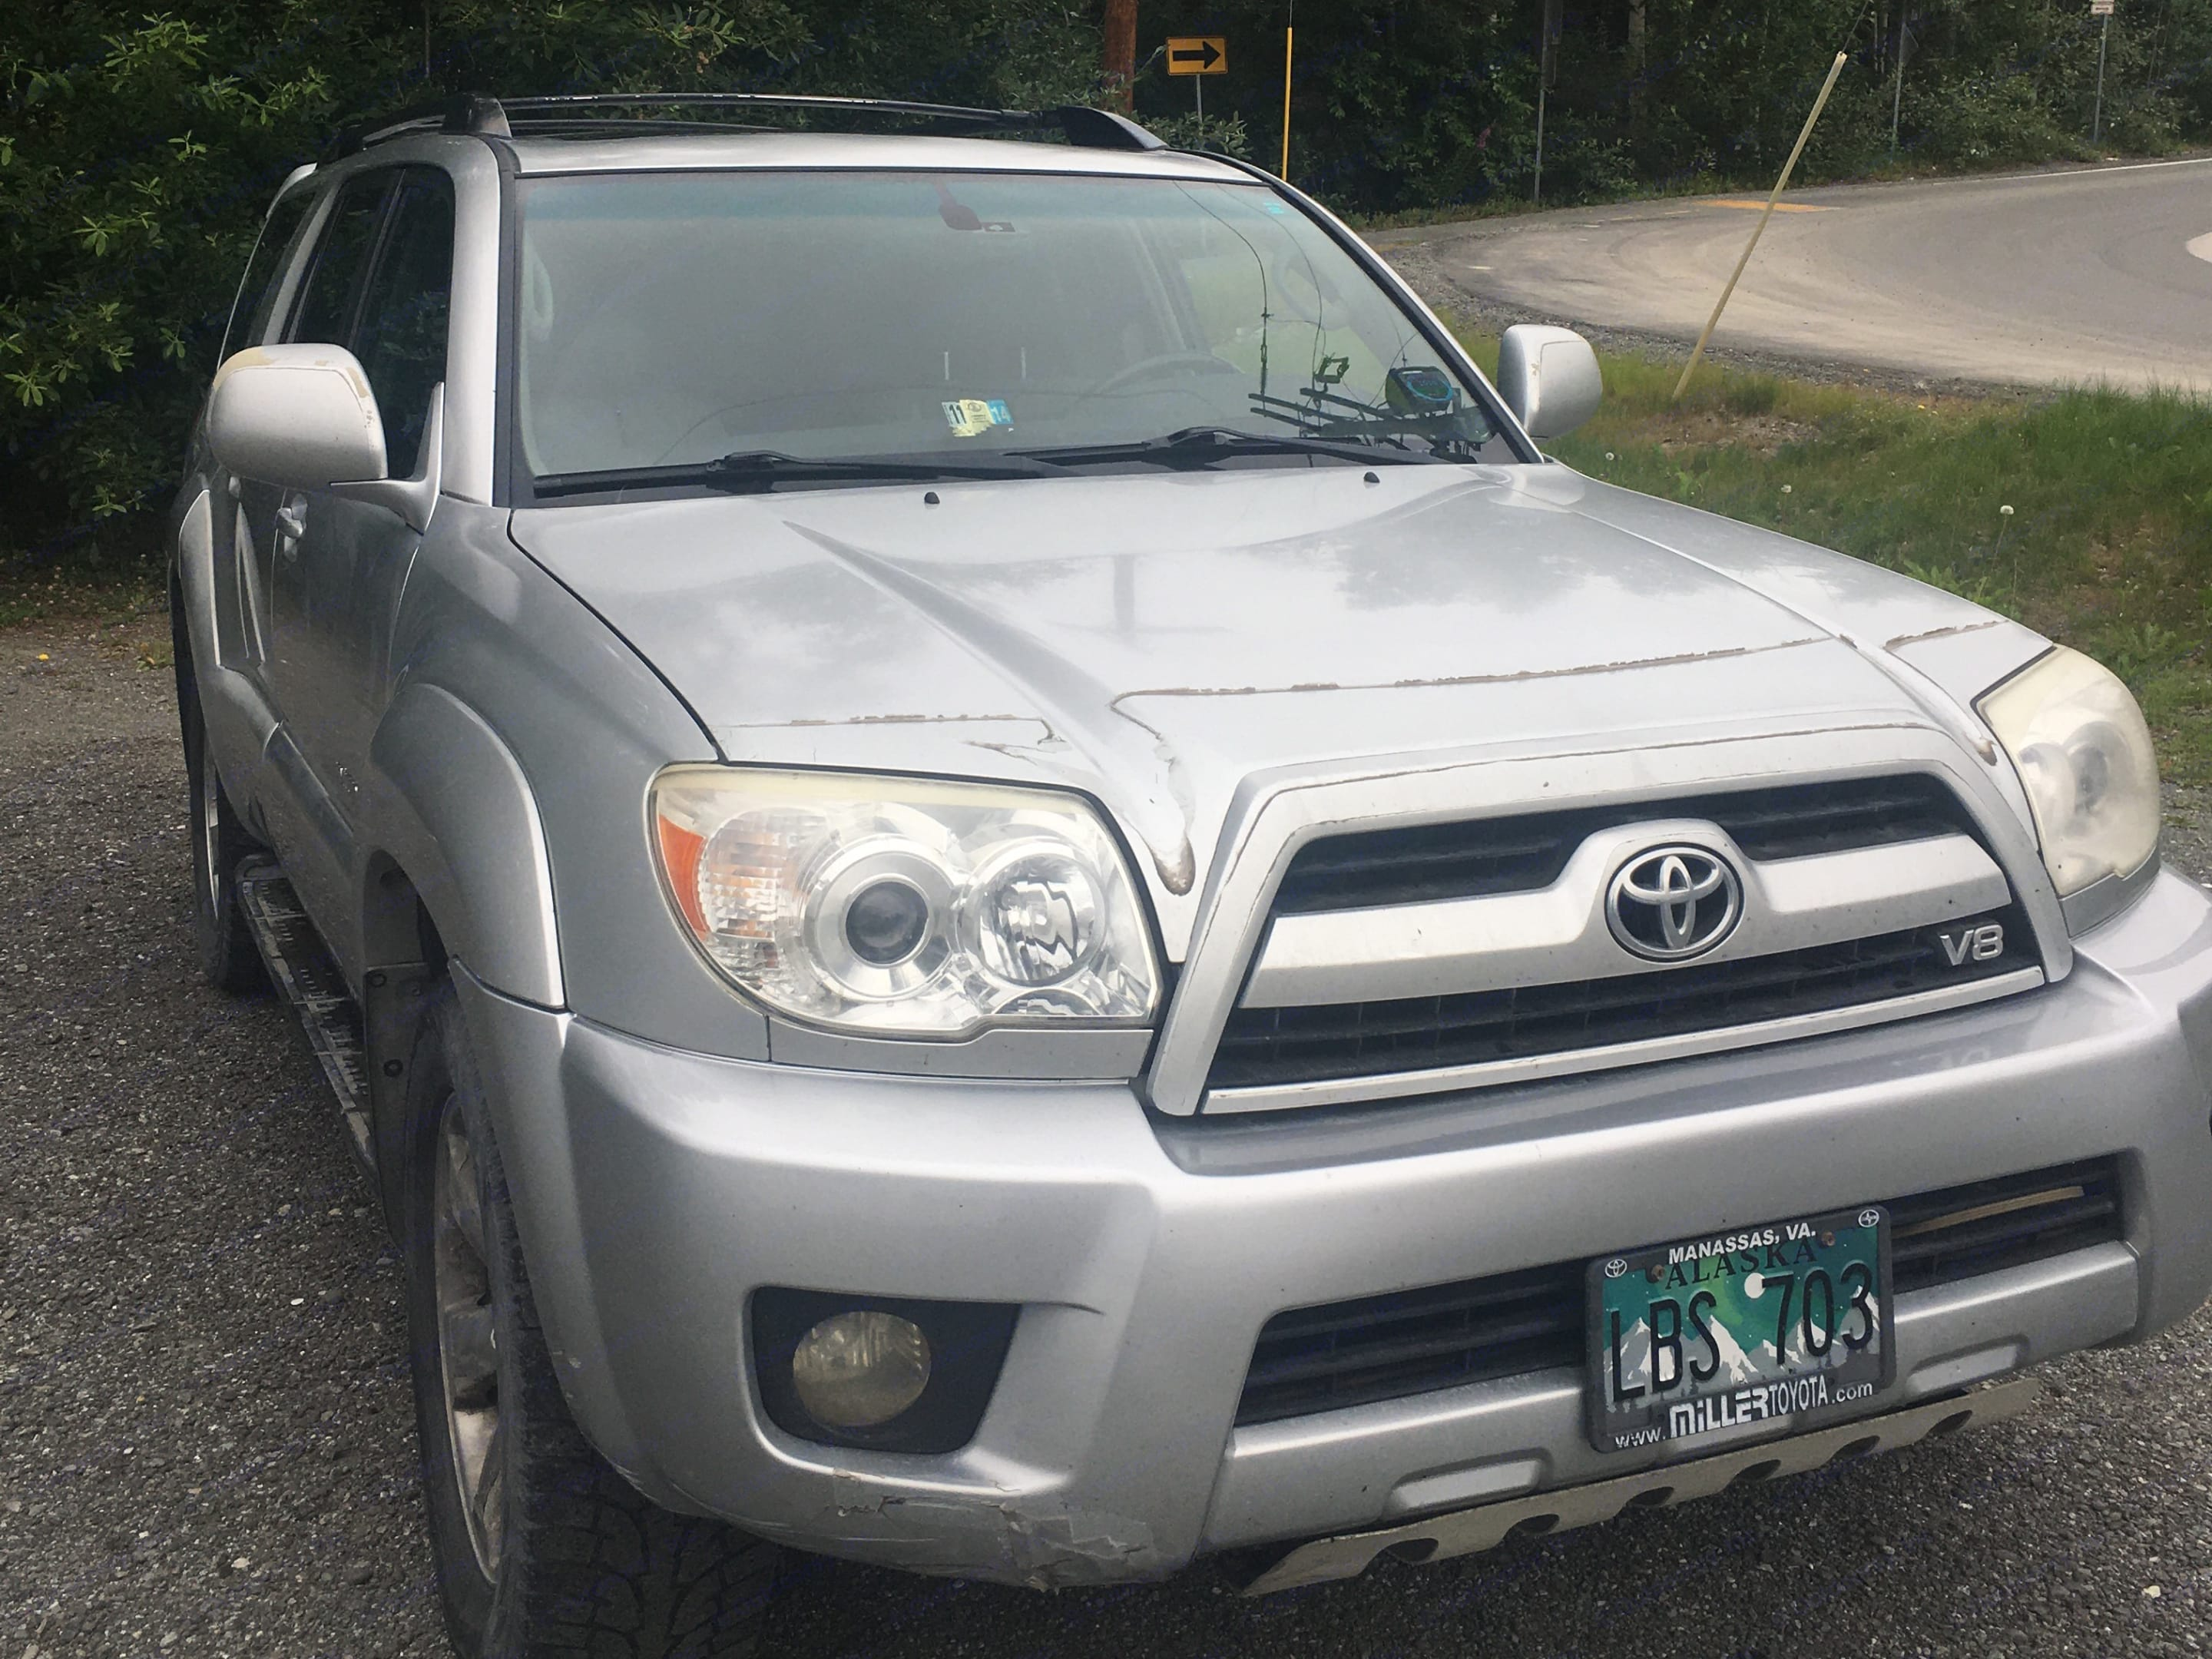 Freshly washed, oil changed, fluid and tires checked: ready to take you around Alaska.. Toyota 4-Runner 2006